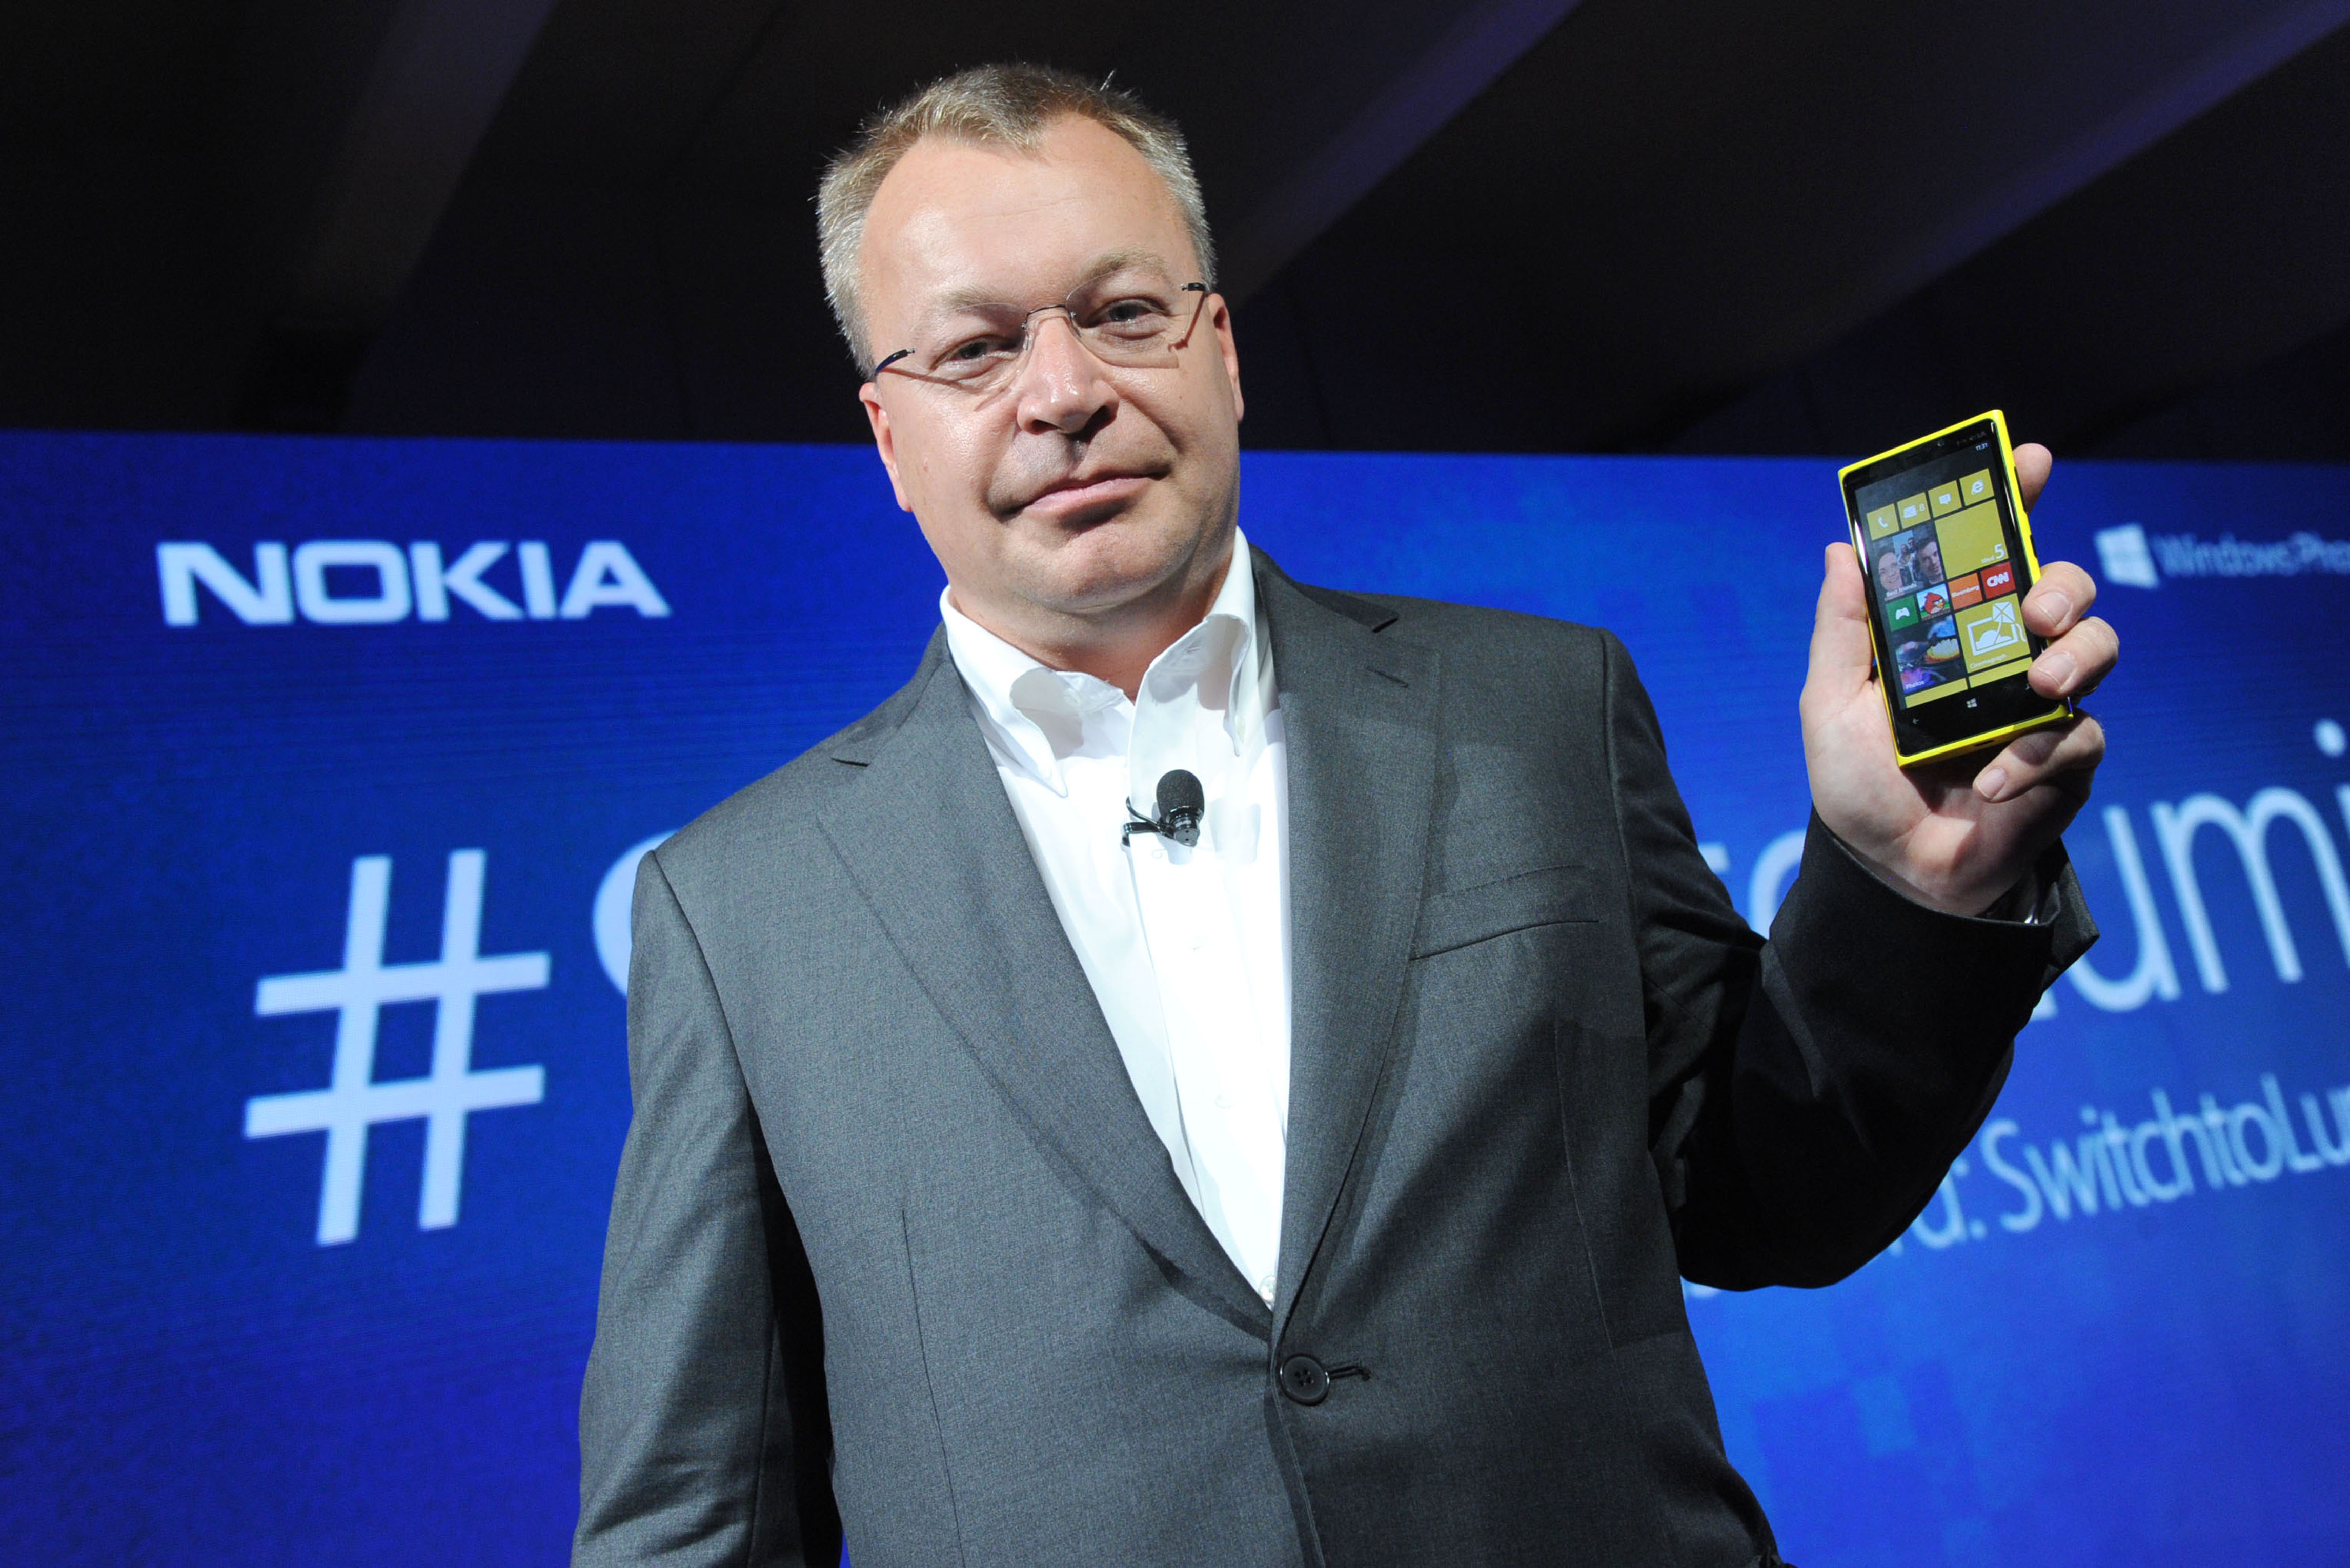 Nokia President and CEO Stephen Elop debuts the Nokia Lumia 920, NokiaÕs flagship Windows Phone 8 smartphone, at a press event in New York, Wednesday, Sept. 5, 2012.   The Lumia 920 features a camera able to take in five times more light than competing smartphones for sharp pictures in low light without flash, and the phone comes with integrated wireless charging as well as an augmented reality mapping app, Nokia City Lens.   (Photo by Diane Bondareff/Invision for Nokia)